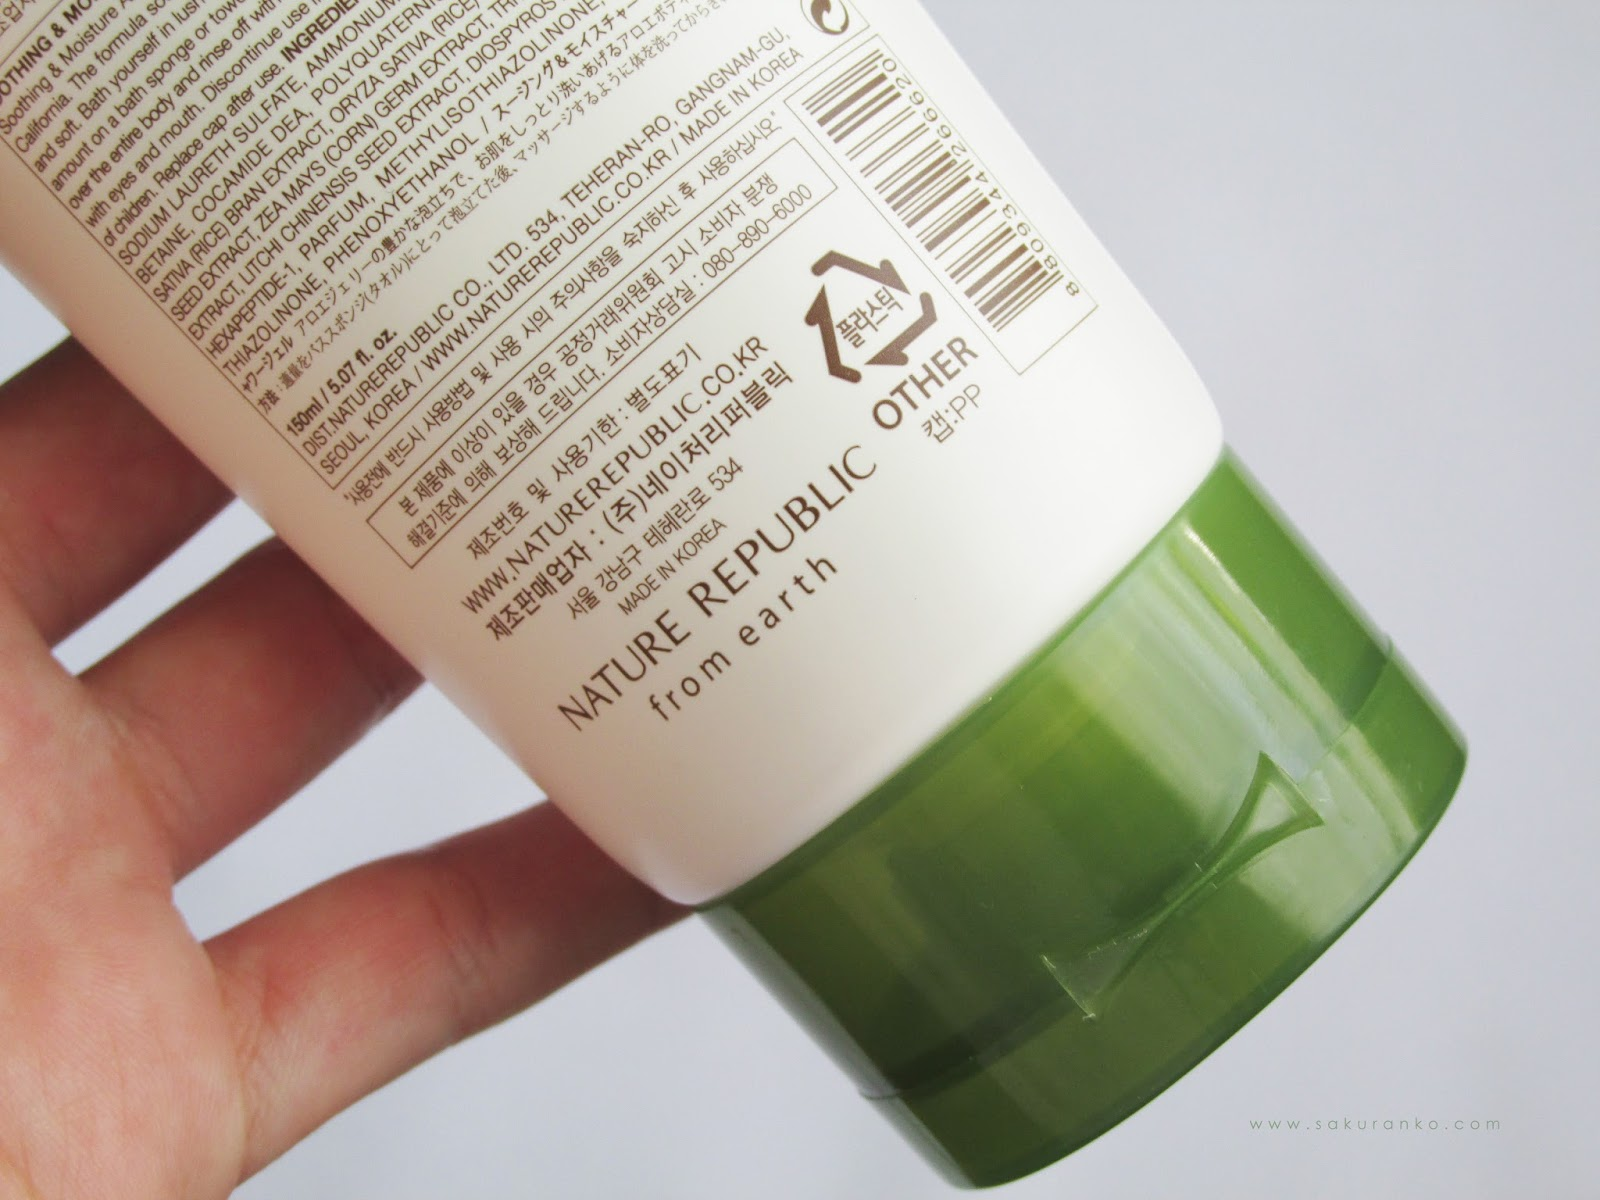 Nature Republic Soothing Moisture Aloe Vera 90 Body Shower Gel Foam Cleanser Texture And Aroma The Is Just A Incolre But Not Heavy Its More Lightwight Like Natural